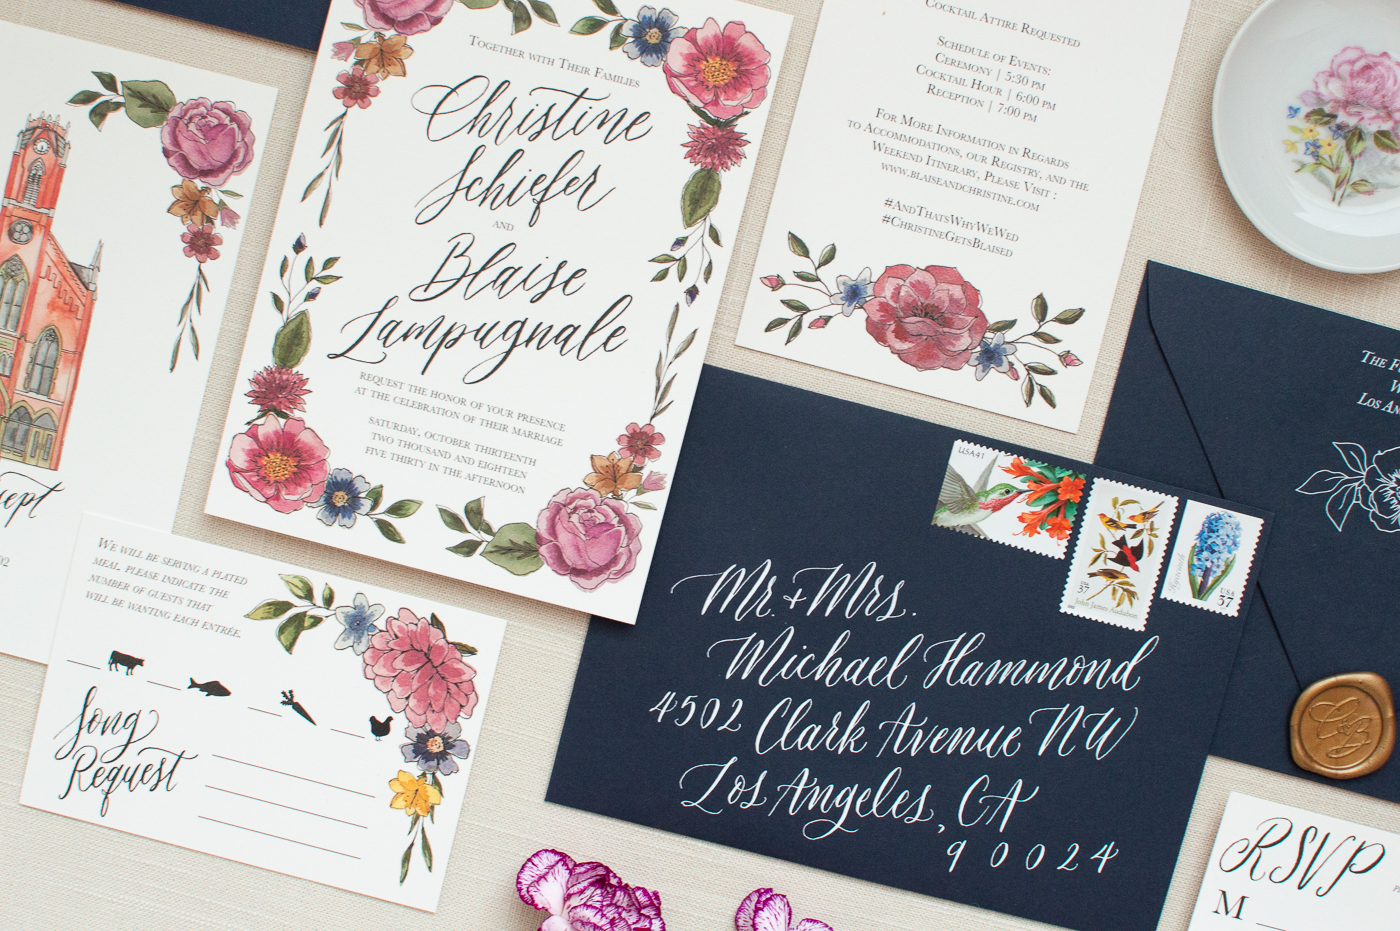 christine & blaise's invitation is still one of my favorites! All of the floral illustrations on their invitation are custom done by me with a combination of watercolor art and line drawing details!